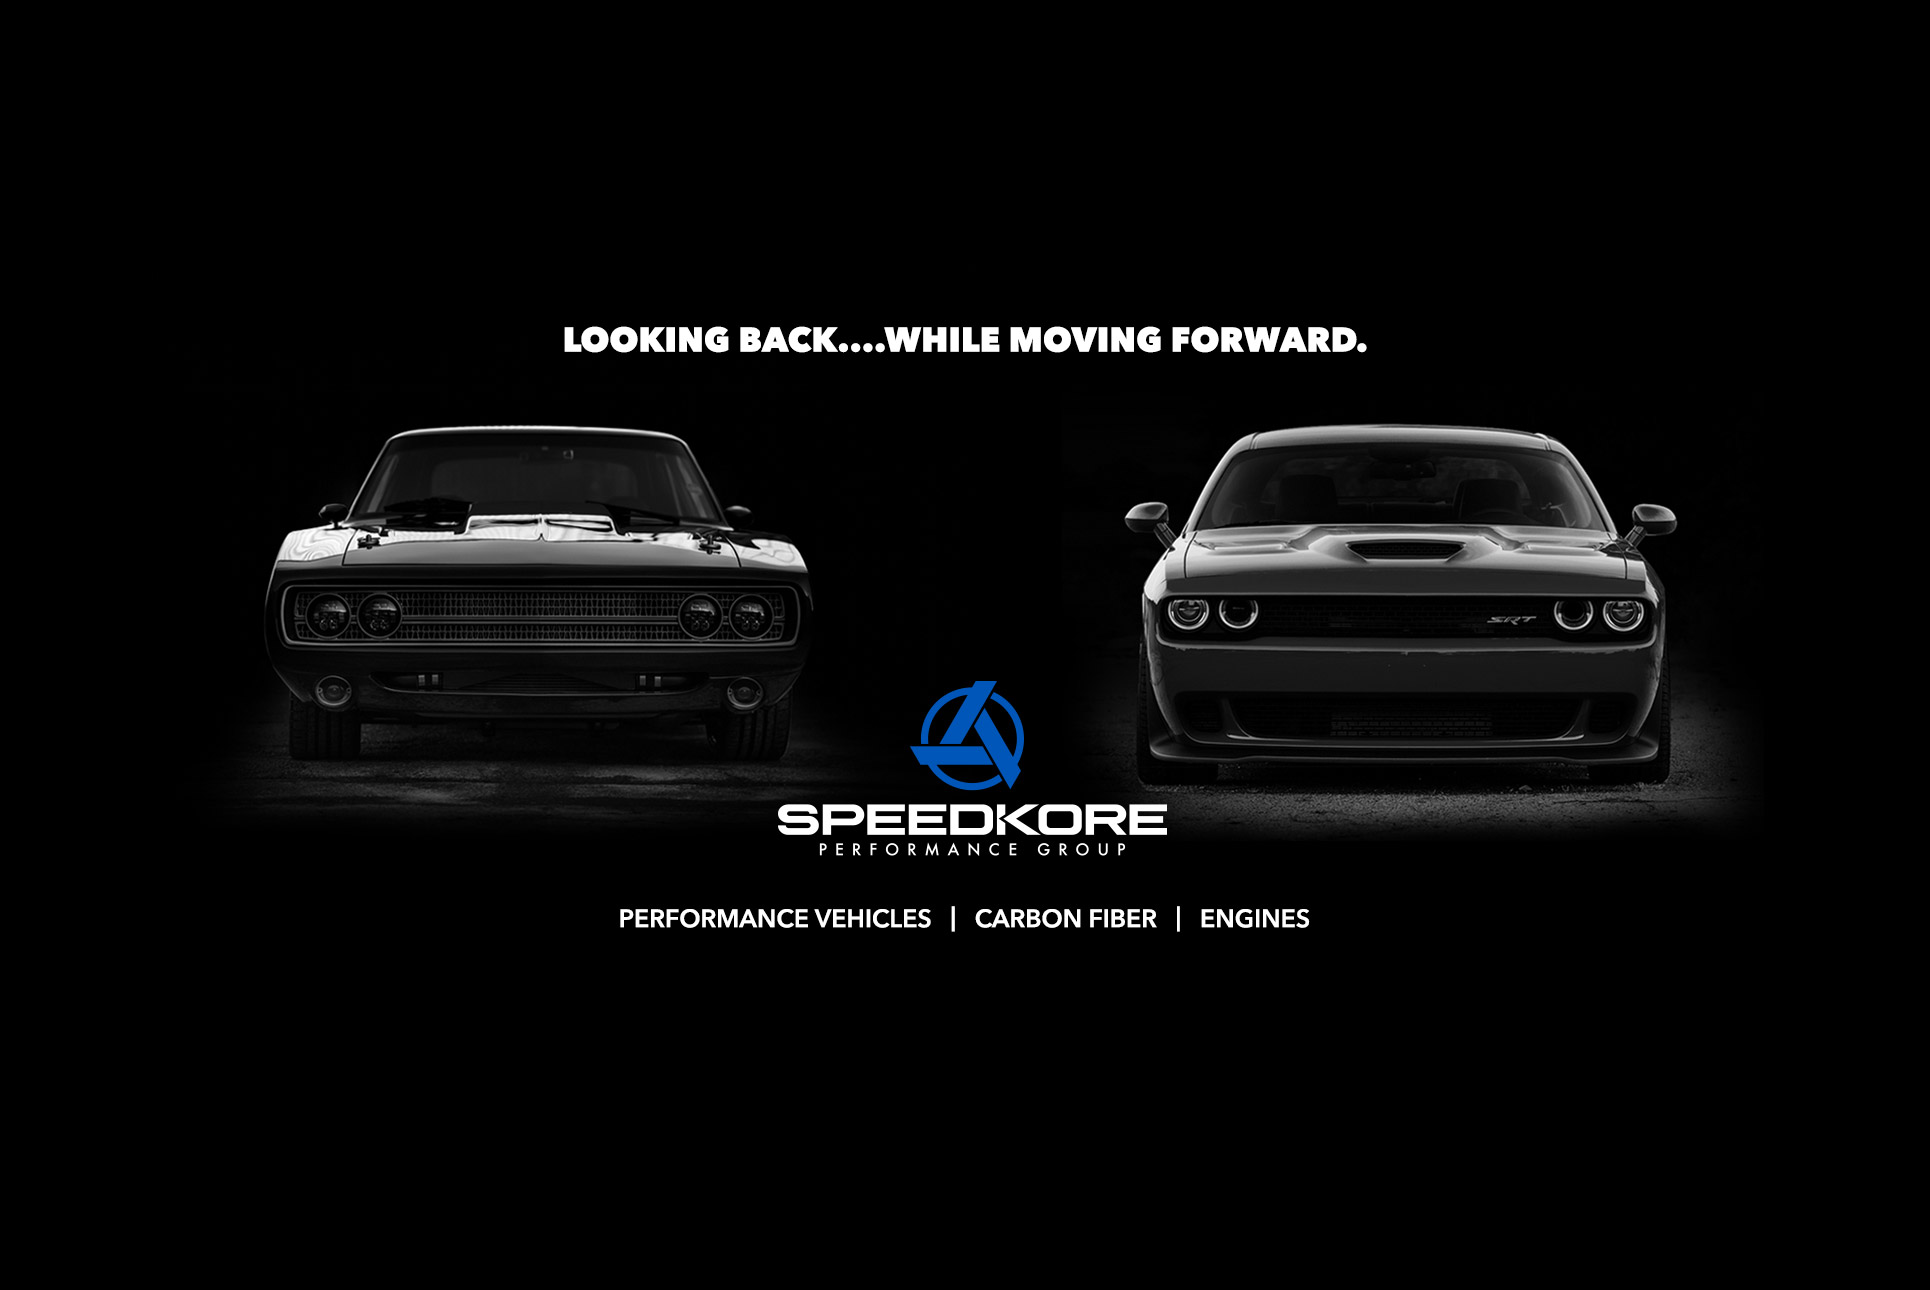 SpeedKore Performance Group, Performance Vehicles, Carbon Fiber, Engine Integration, Mercury Racing, Composite Manufacturing